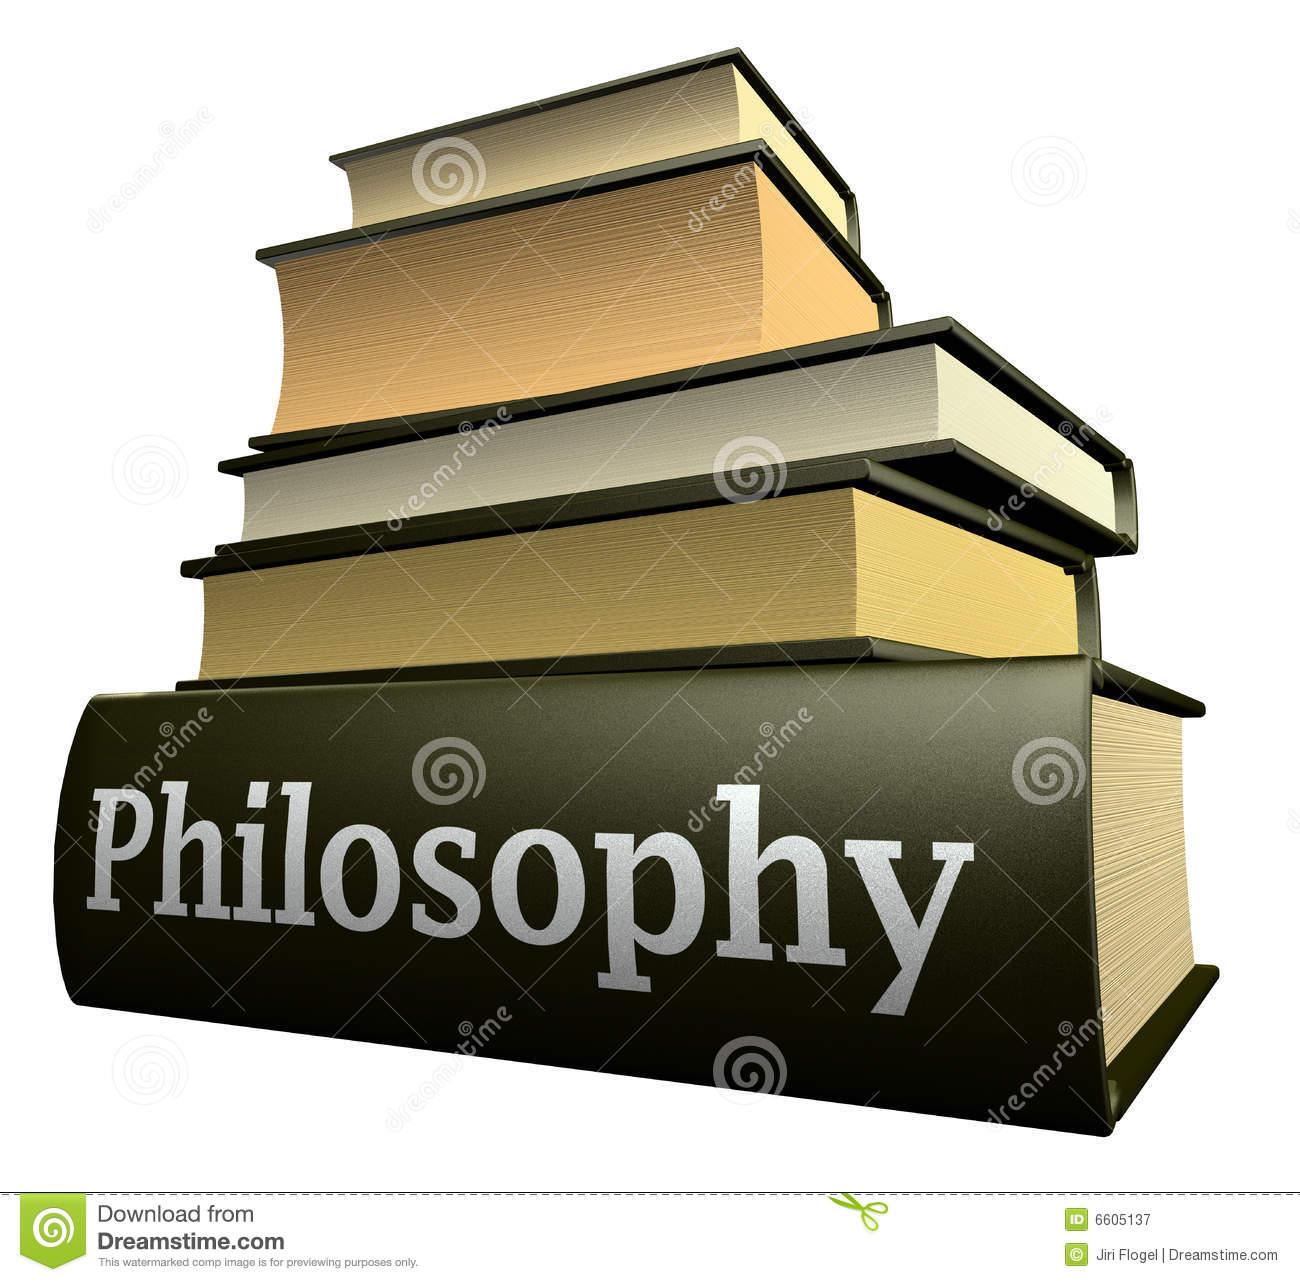 Royalty Free Stock Photography Education Books Philosophy Image6605137 on small modern architecture